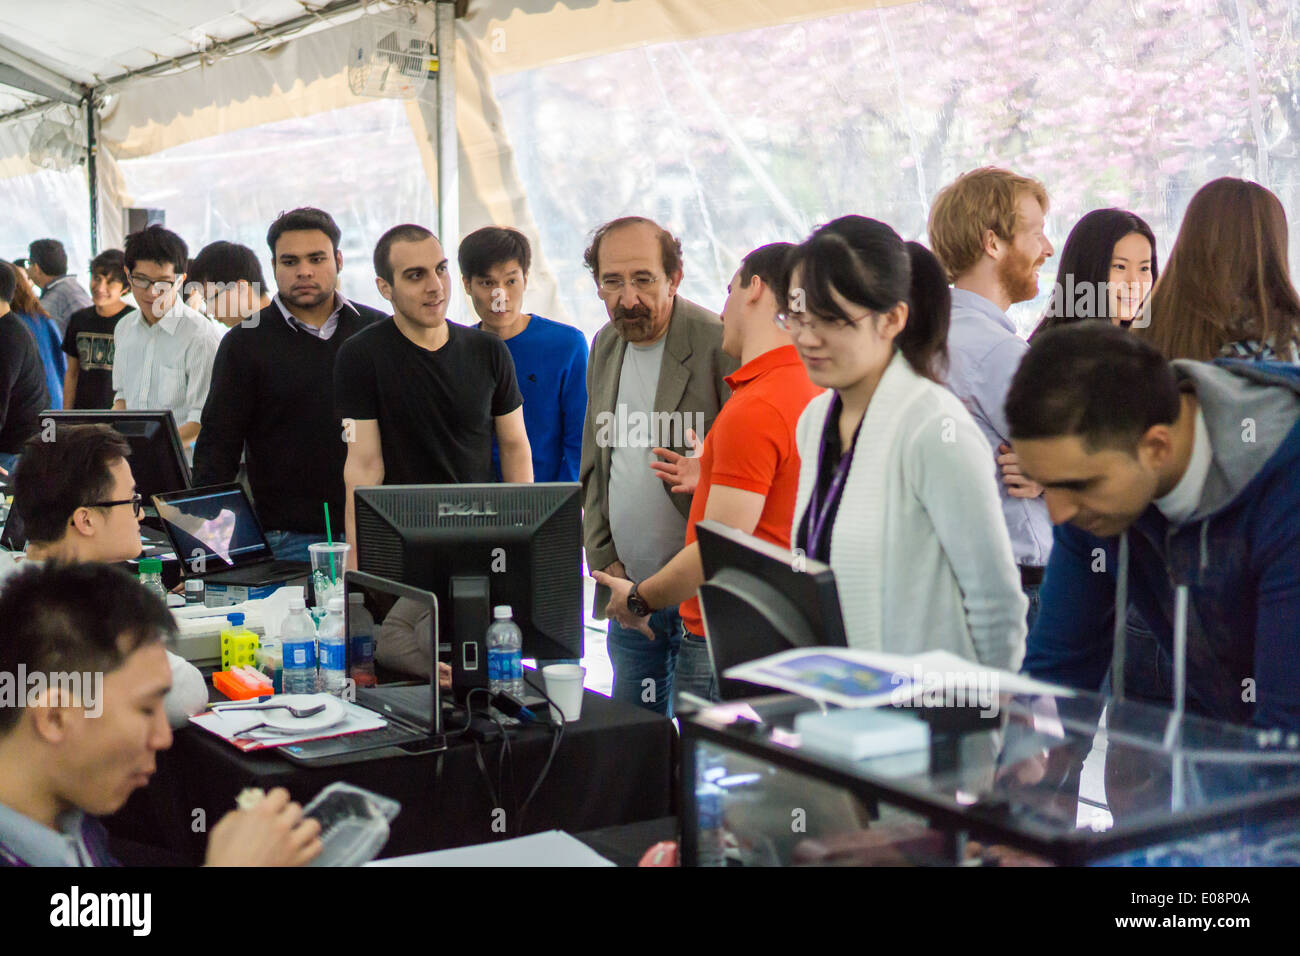 NYU-Polytechnic School of Engineering's second annual Research Expo in Brooklyn's 'Tech Triangle' in New York - Stock Image